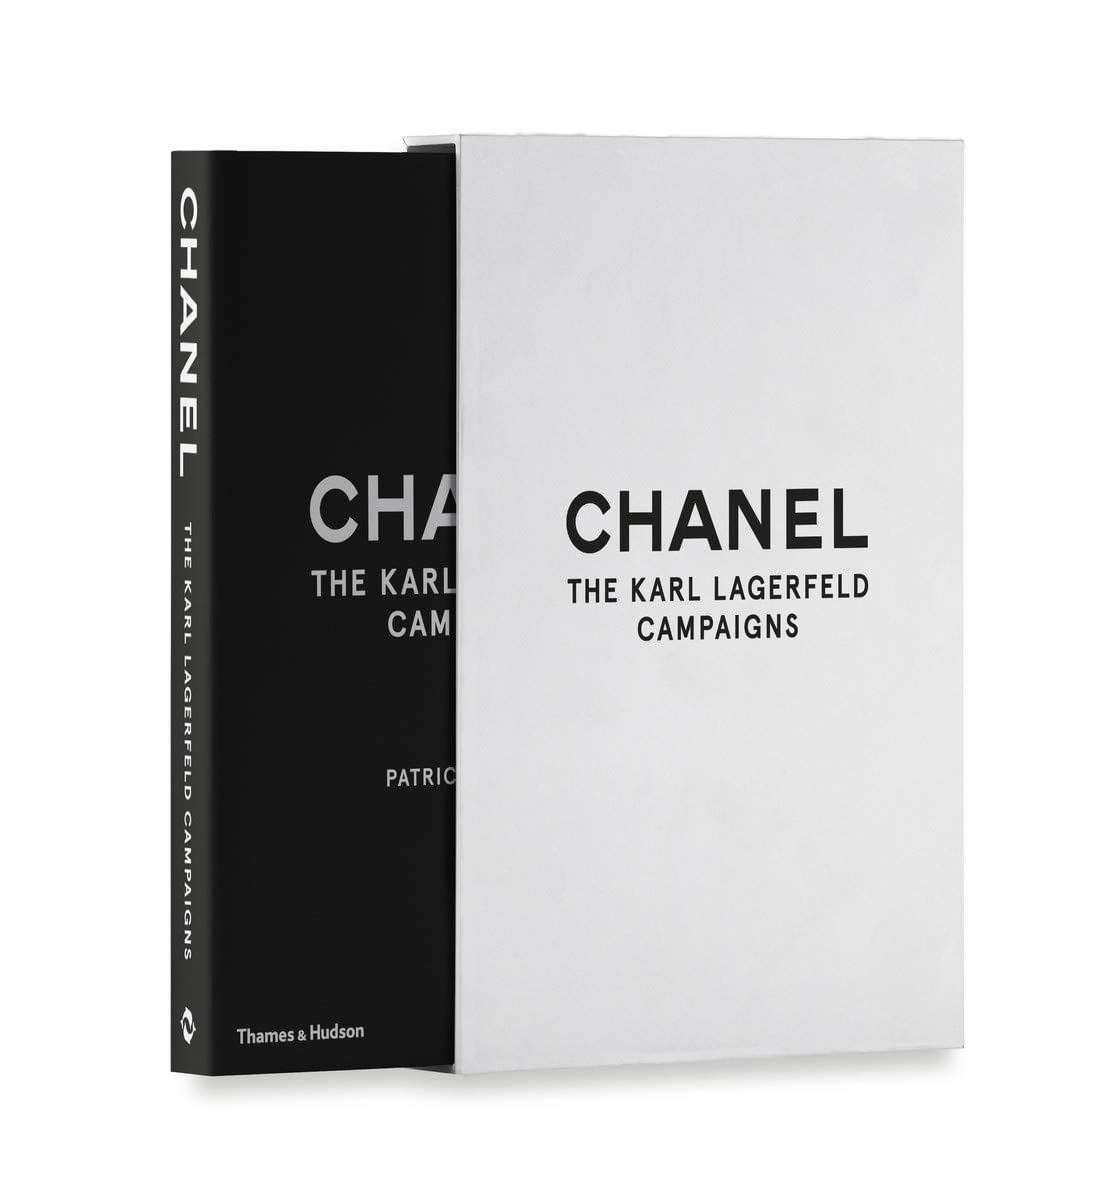 Livro The Karl Lagerfeld Campaigns